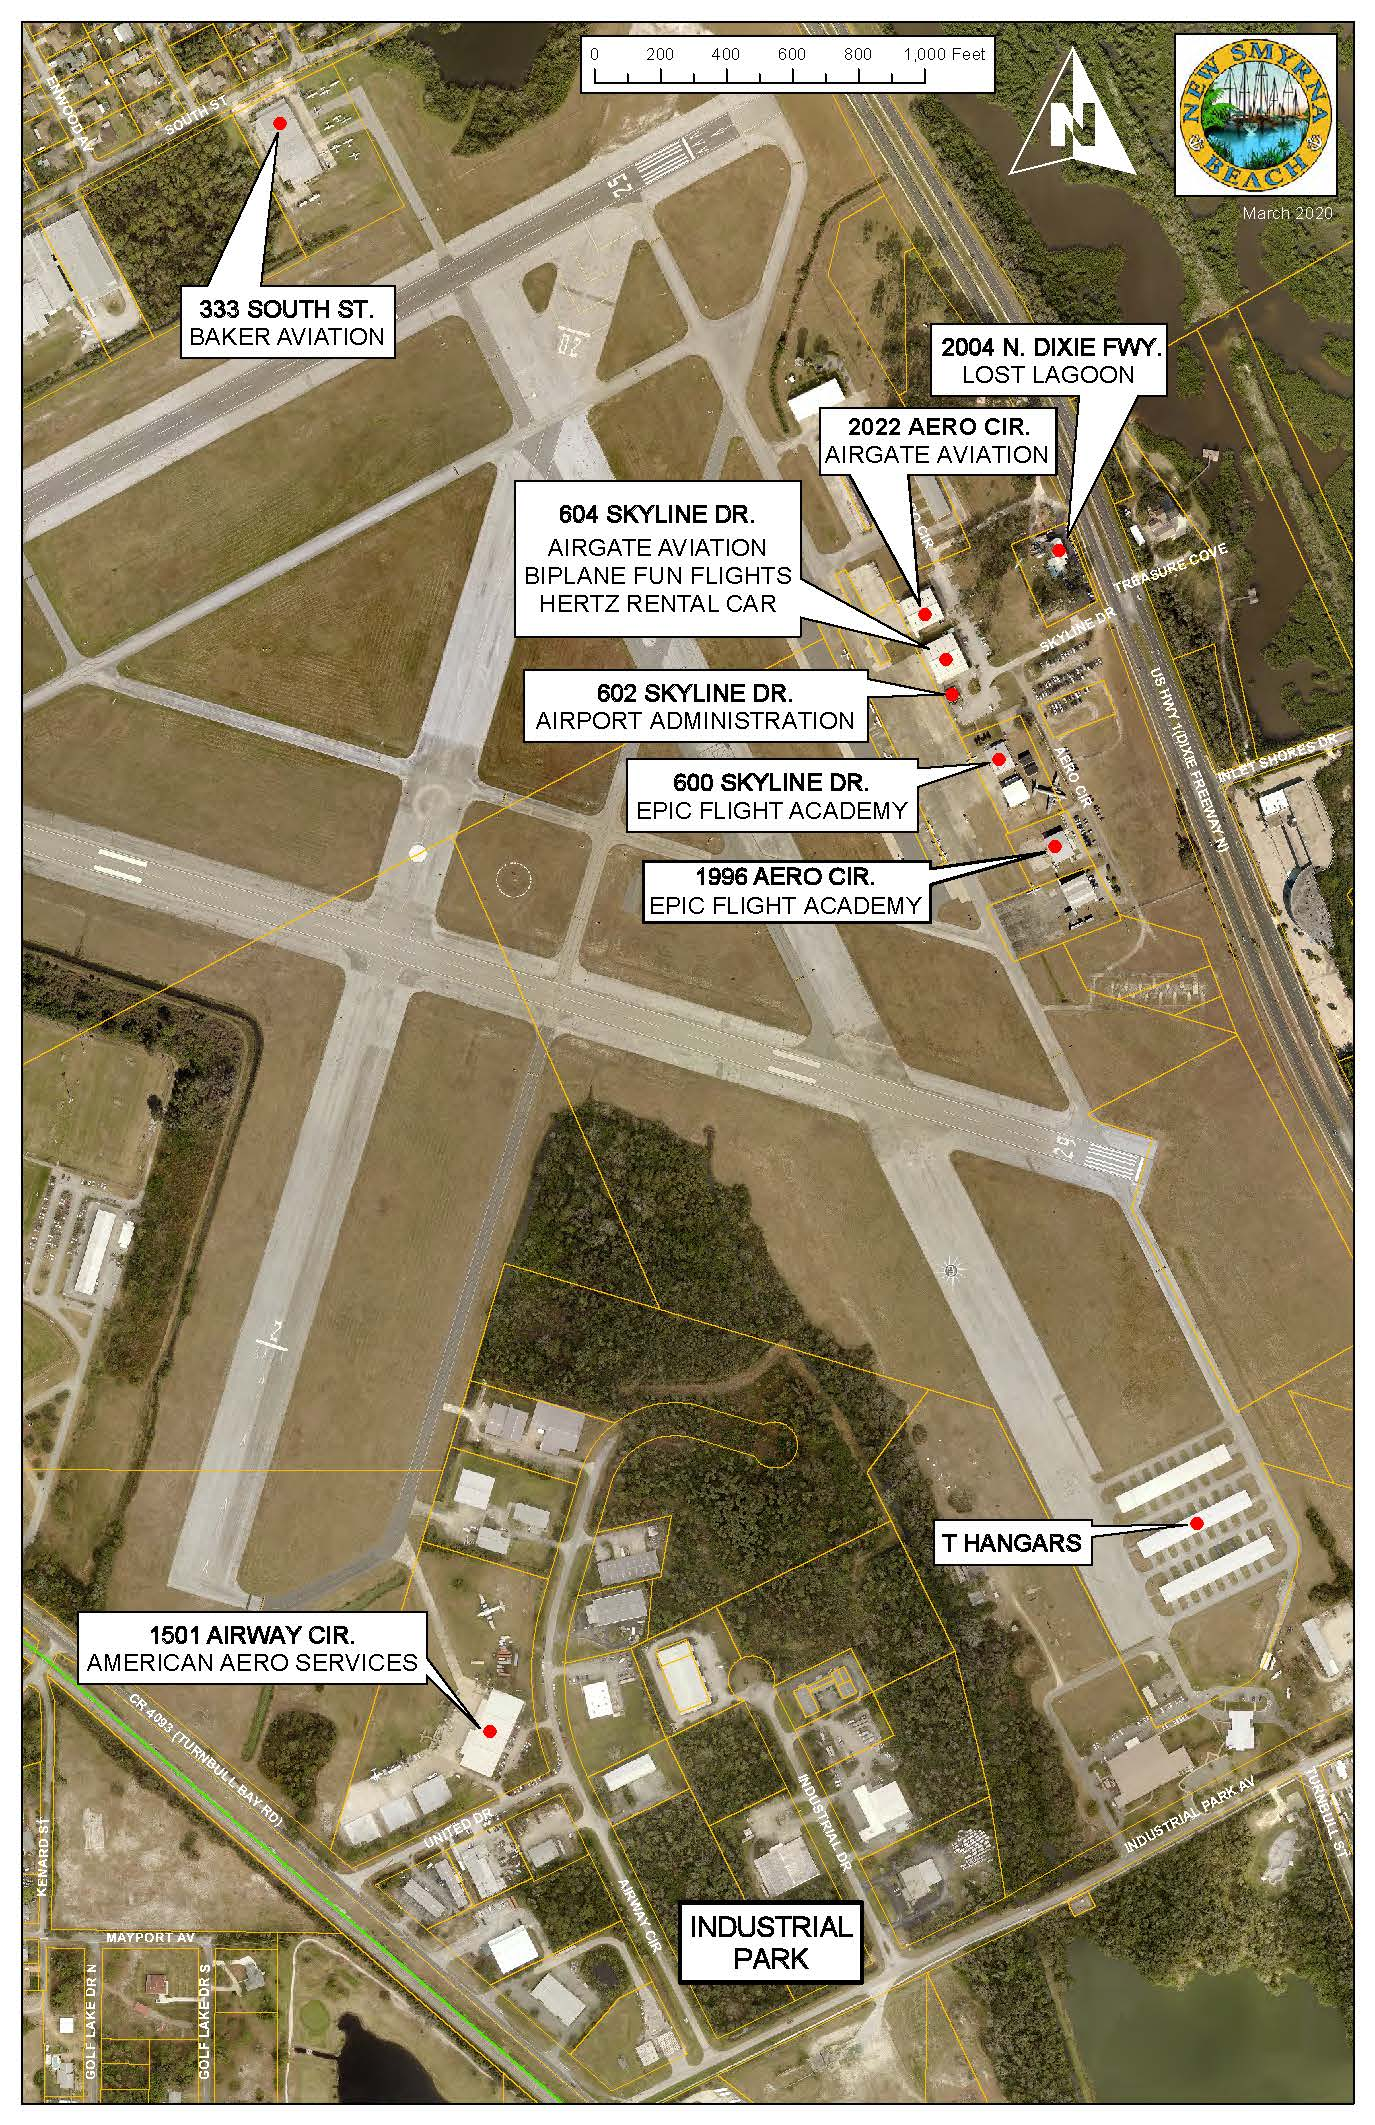 Map depicting businesses on airport property. Please call (386) 410-2680.